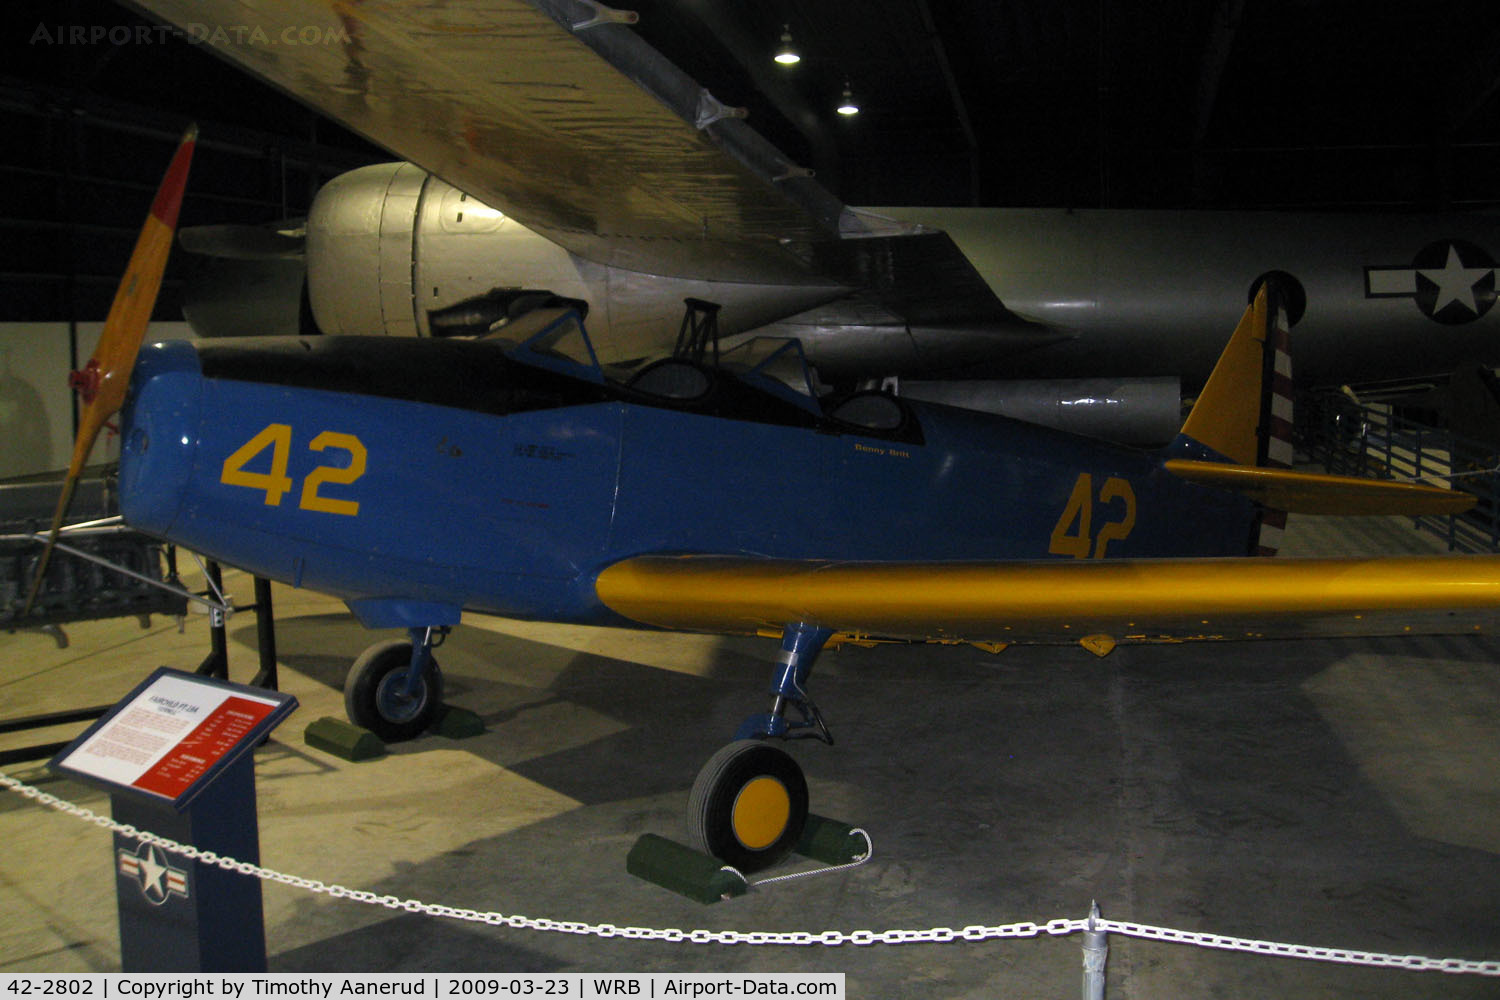 42-2802, 1942 Fairchild PT-19A C/N Not found 42-2802, Museum of Aviation, Robins AFB